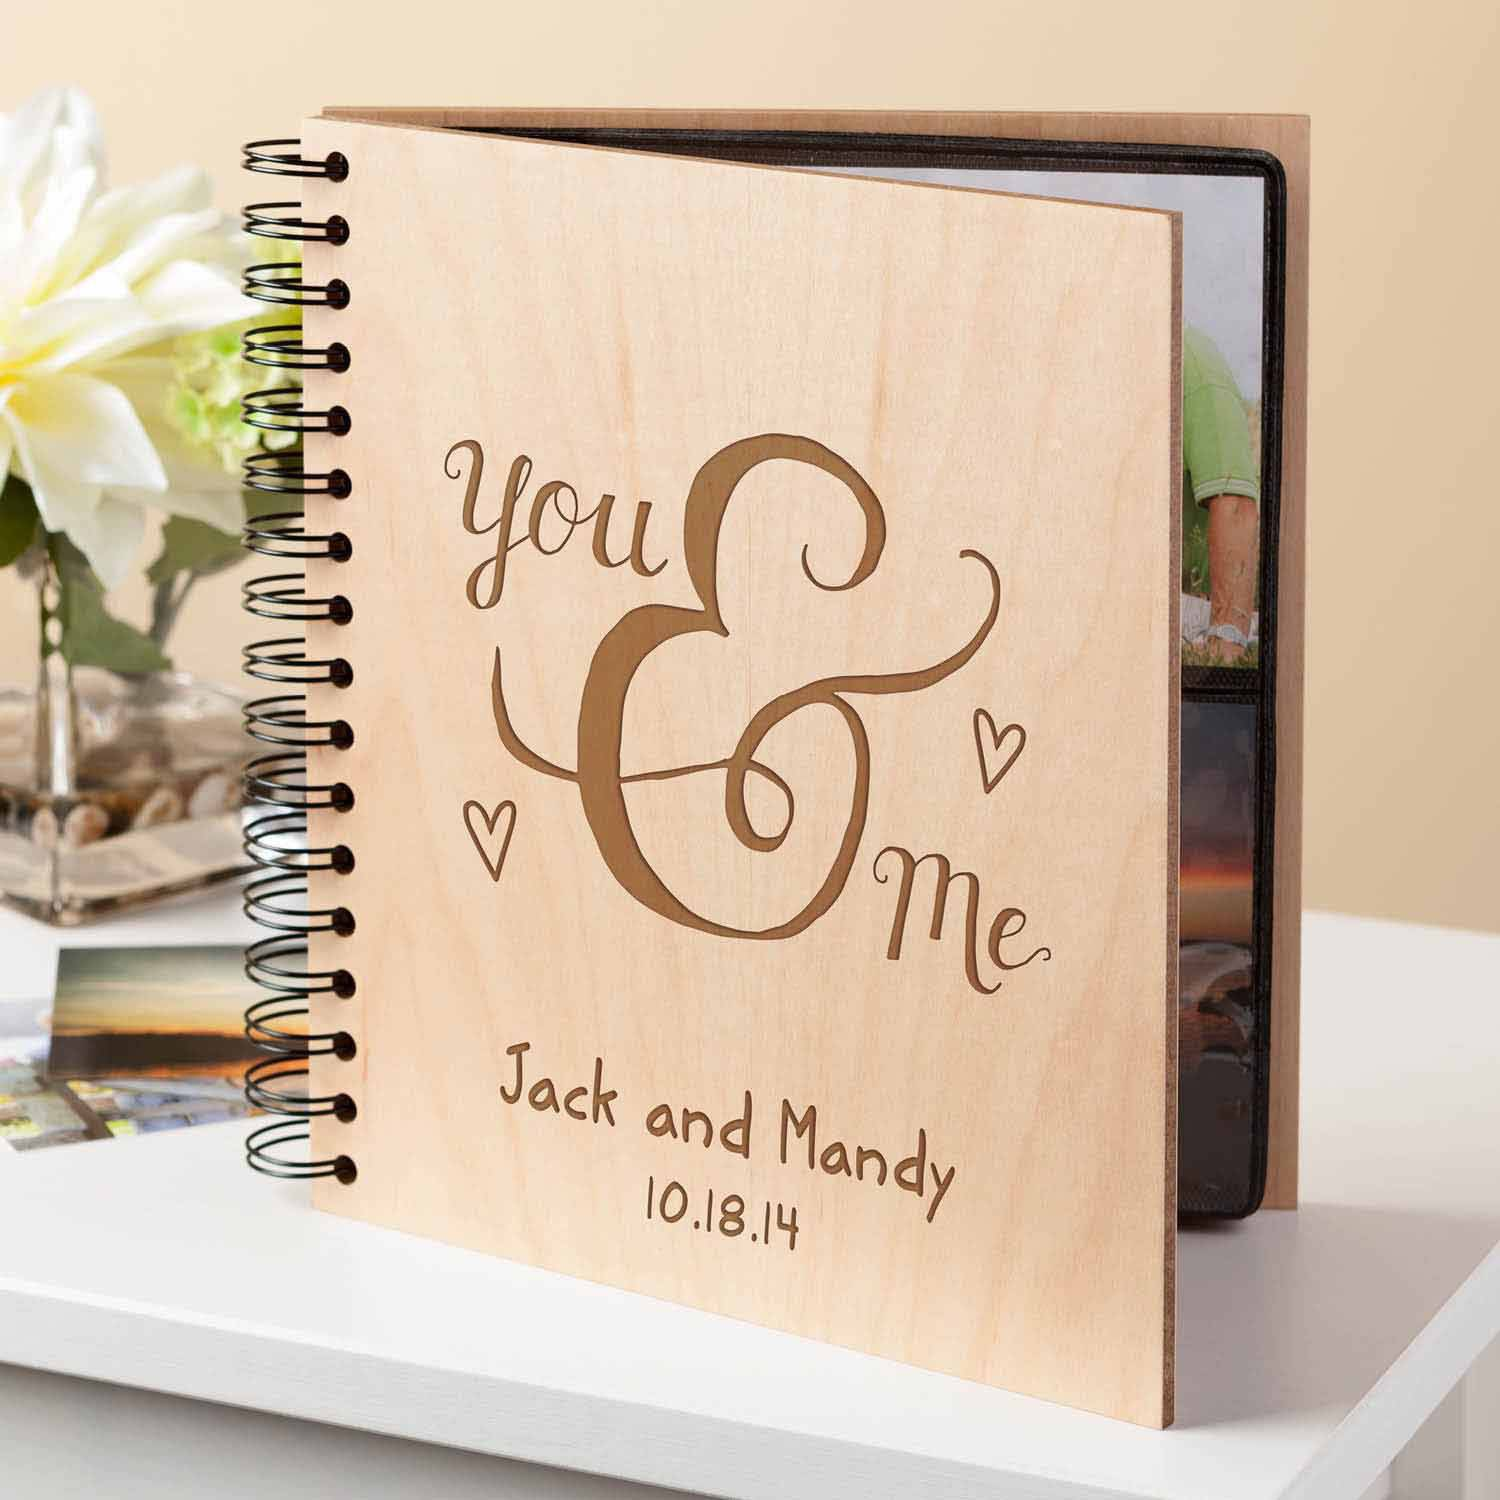 Personalized Photo Album - You and Me